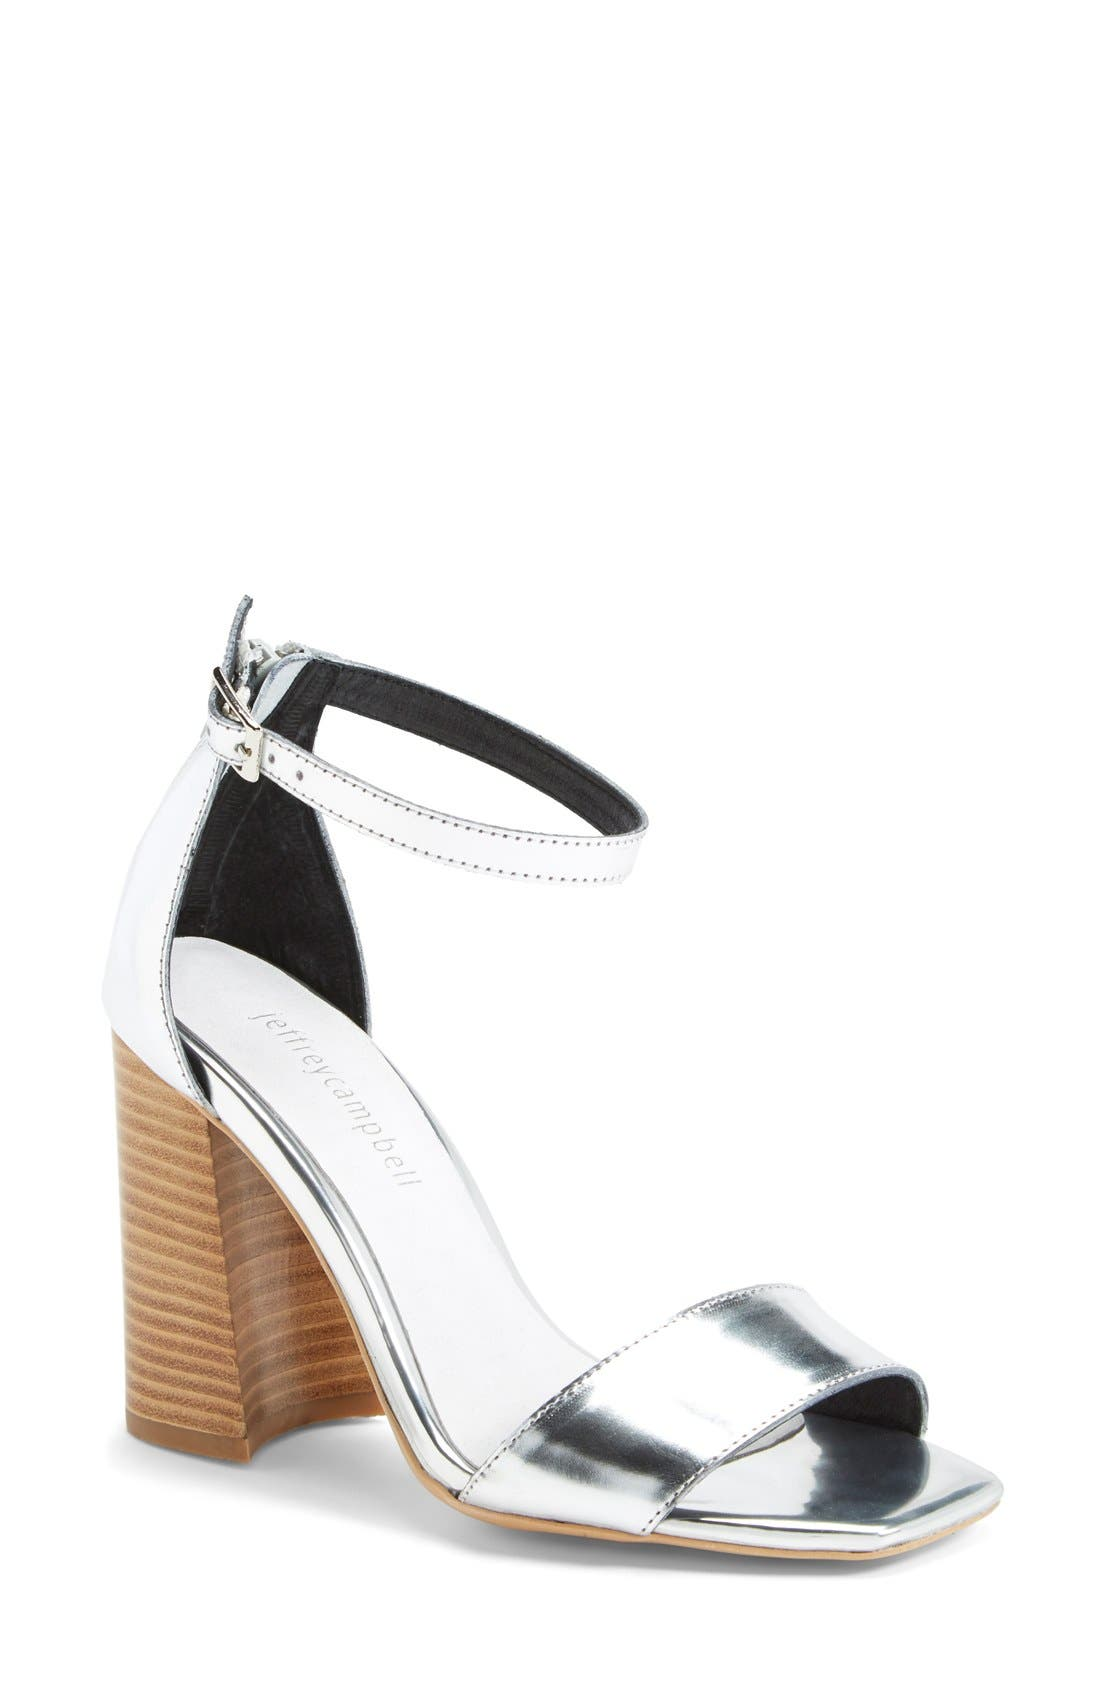 Main Image - Jeffrey Campbell 'Manor' Metallic Leather Ankle Strap Sandal (Women)